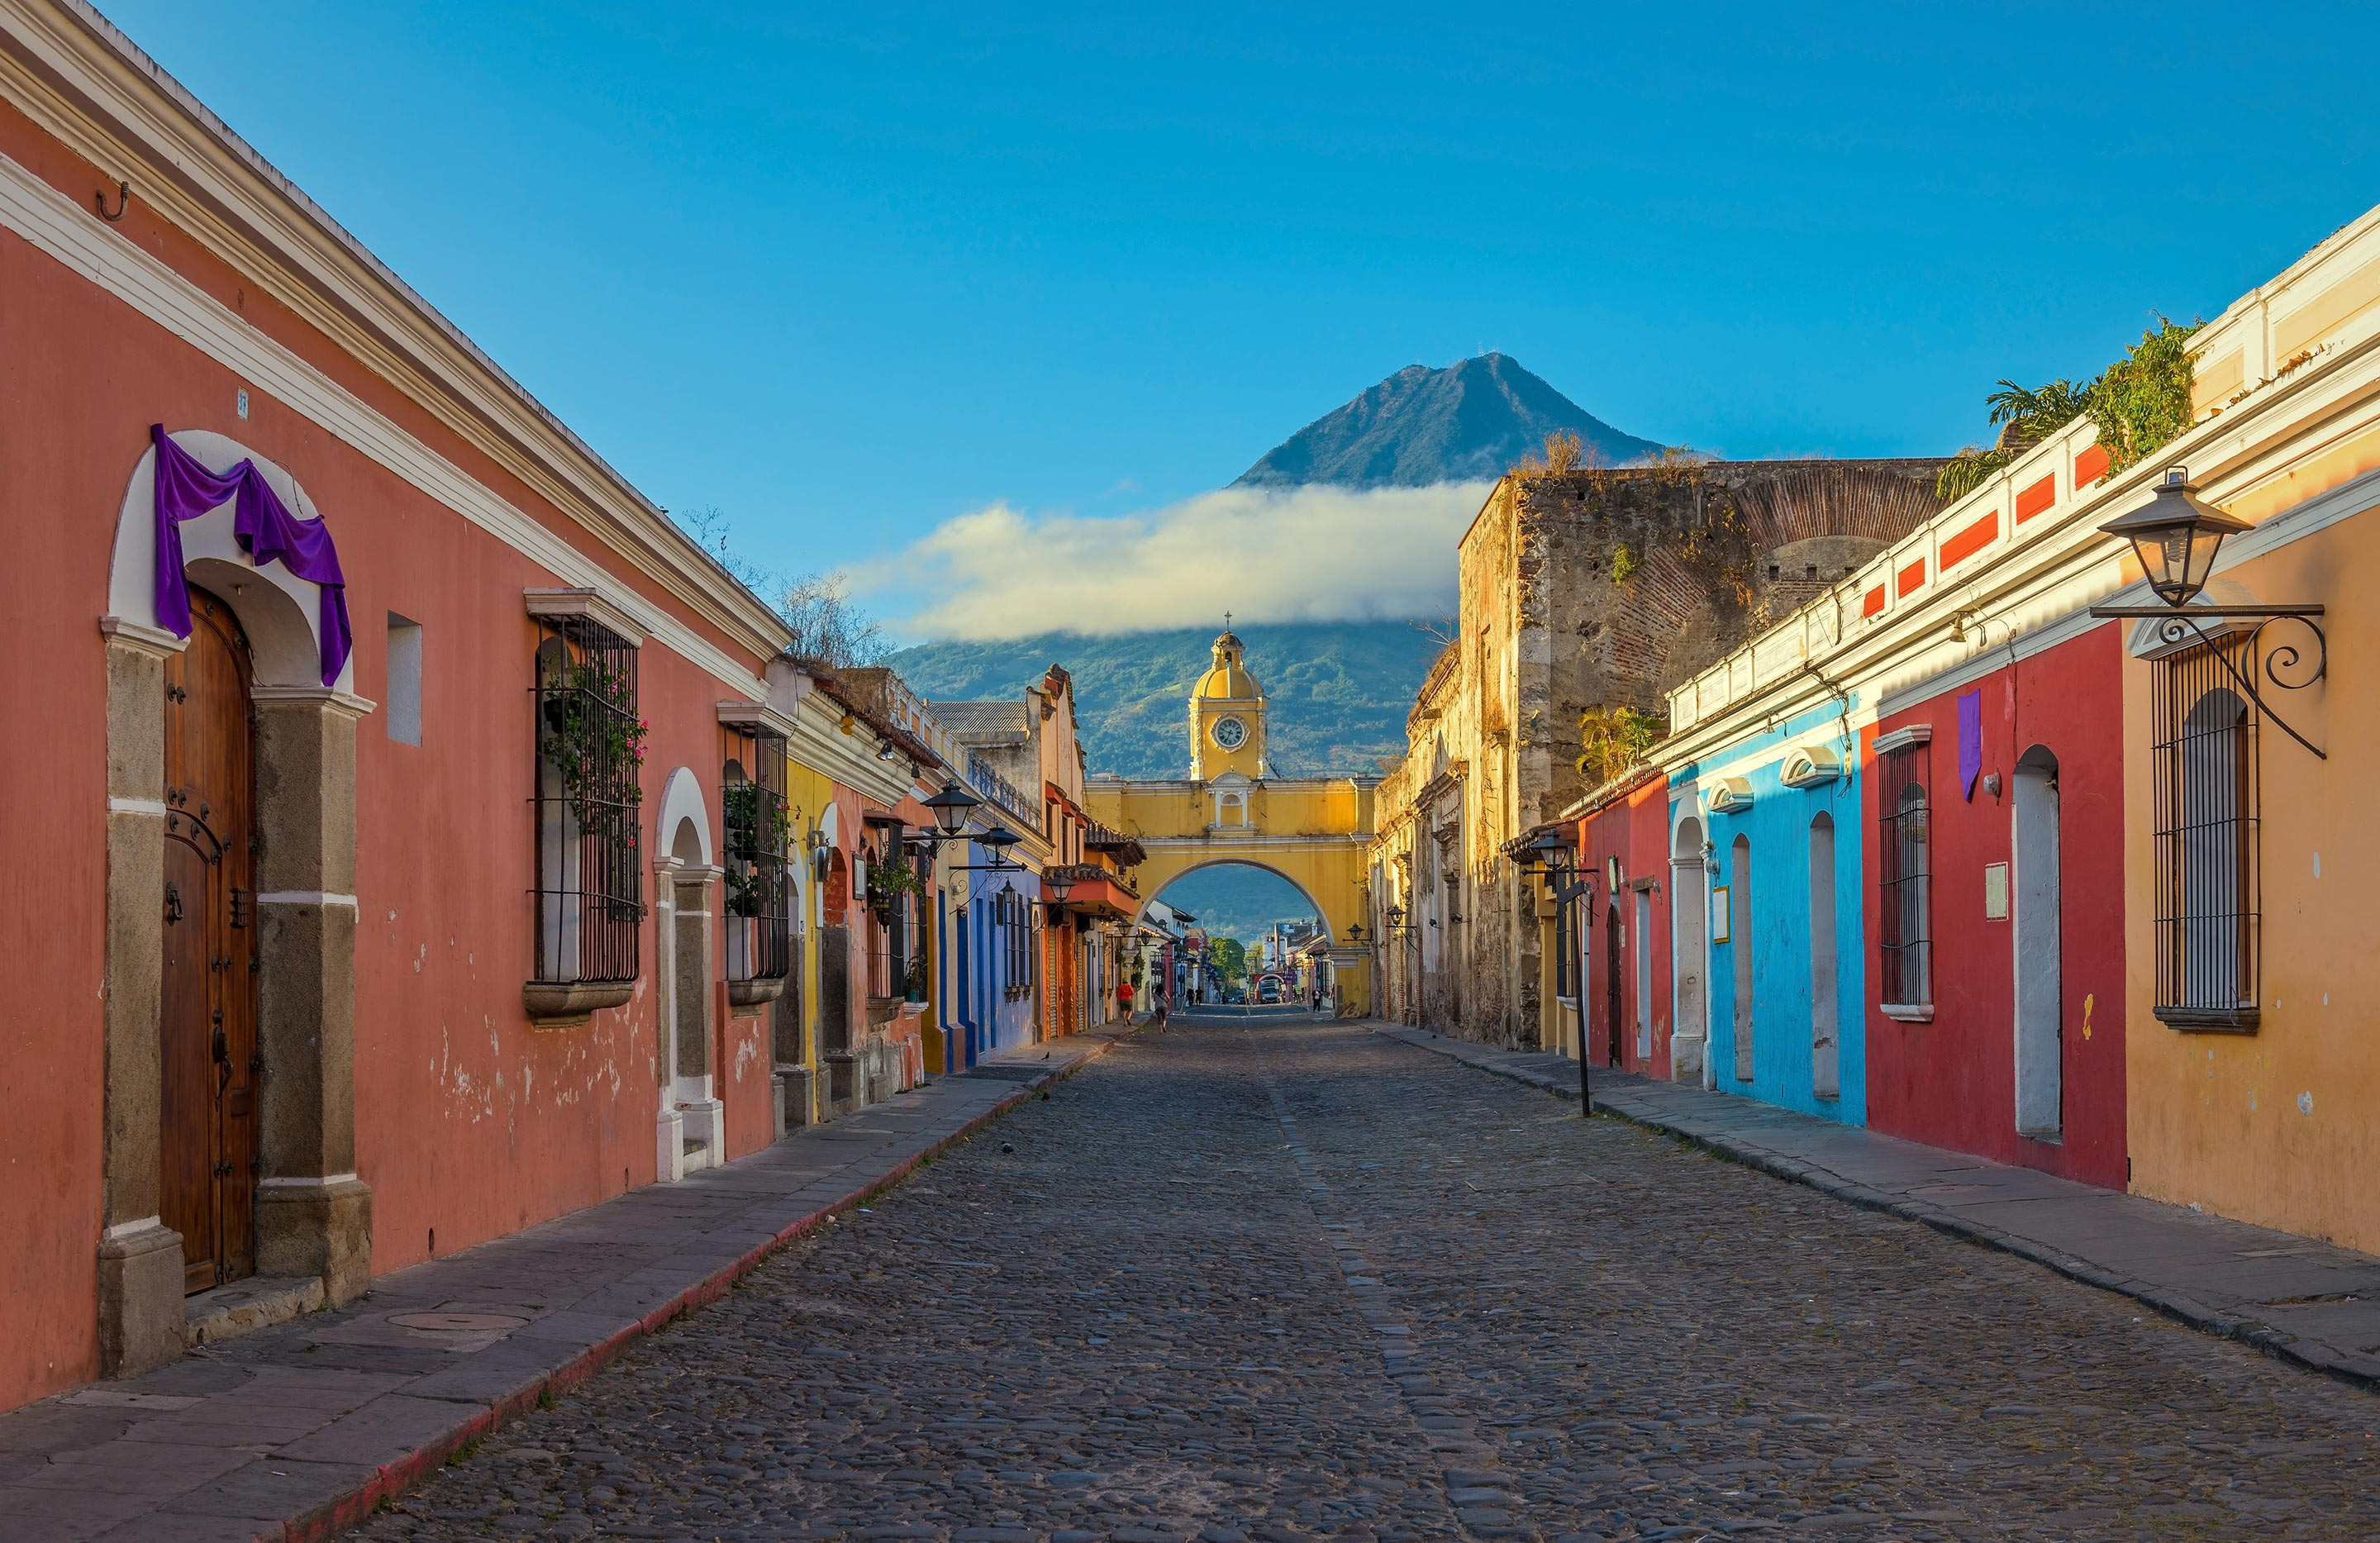 Antigua, Guatemala with Agua Volcano in the Background